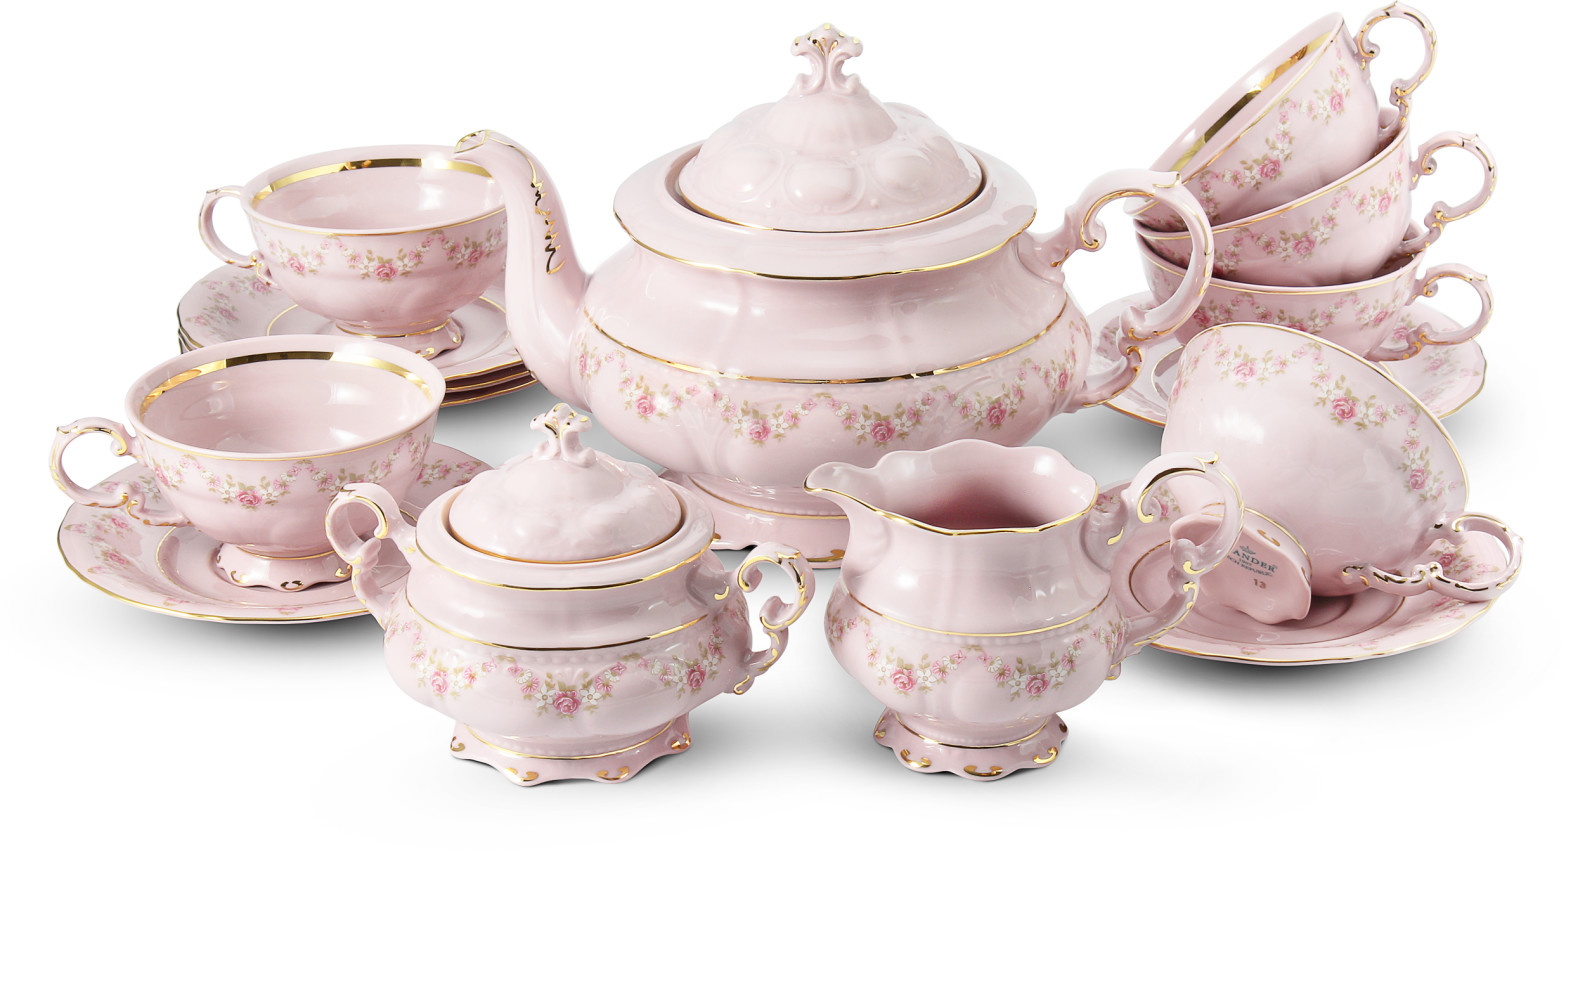 Tea set 15-piece Rose garland rose porcelain